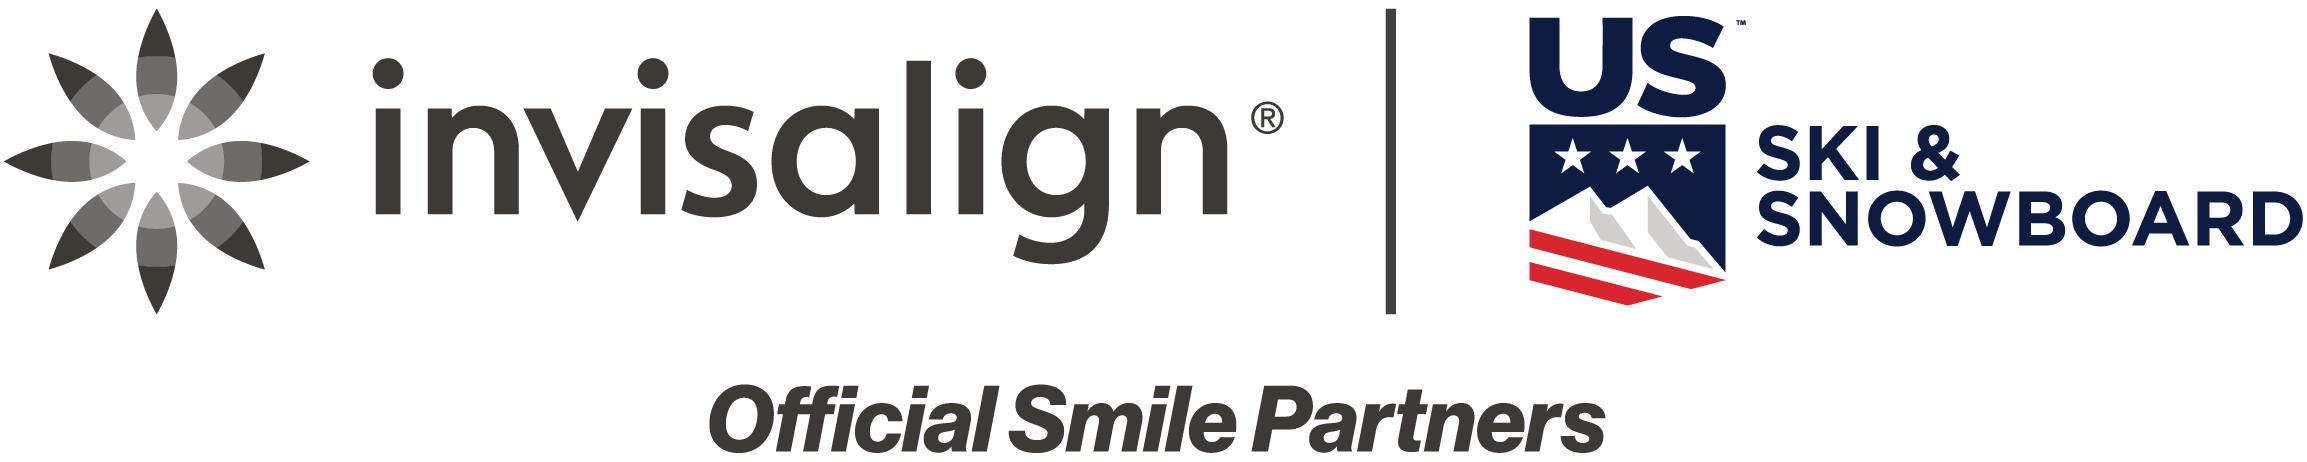 Align Technology's Invisalign Brand is the Official Smile Partner of U.S. Ski & Snowboard